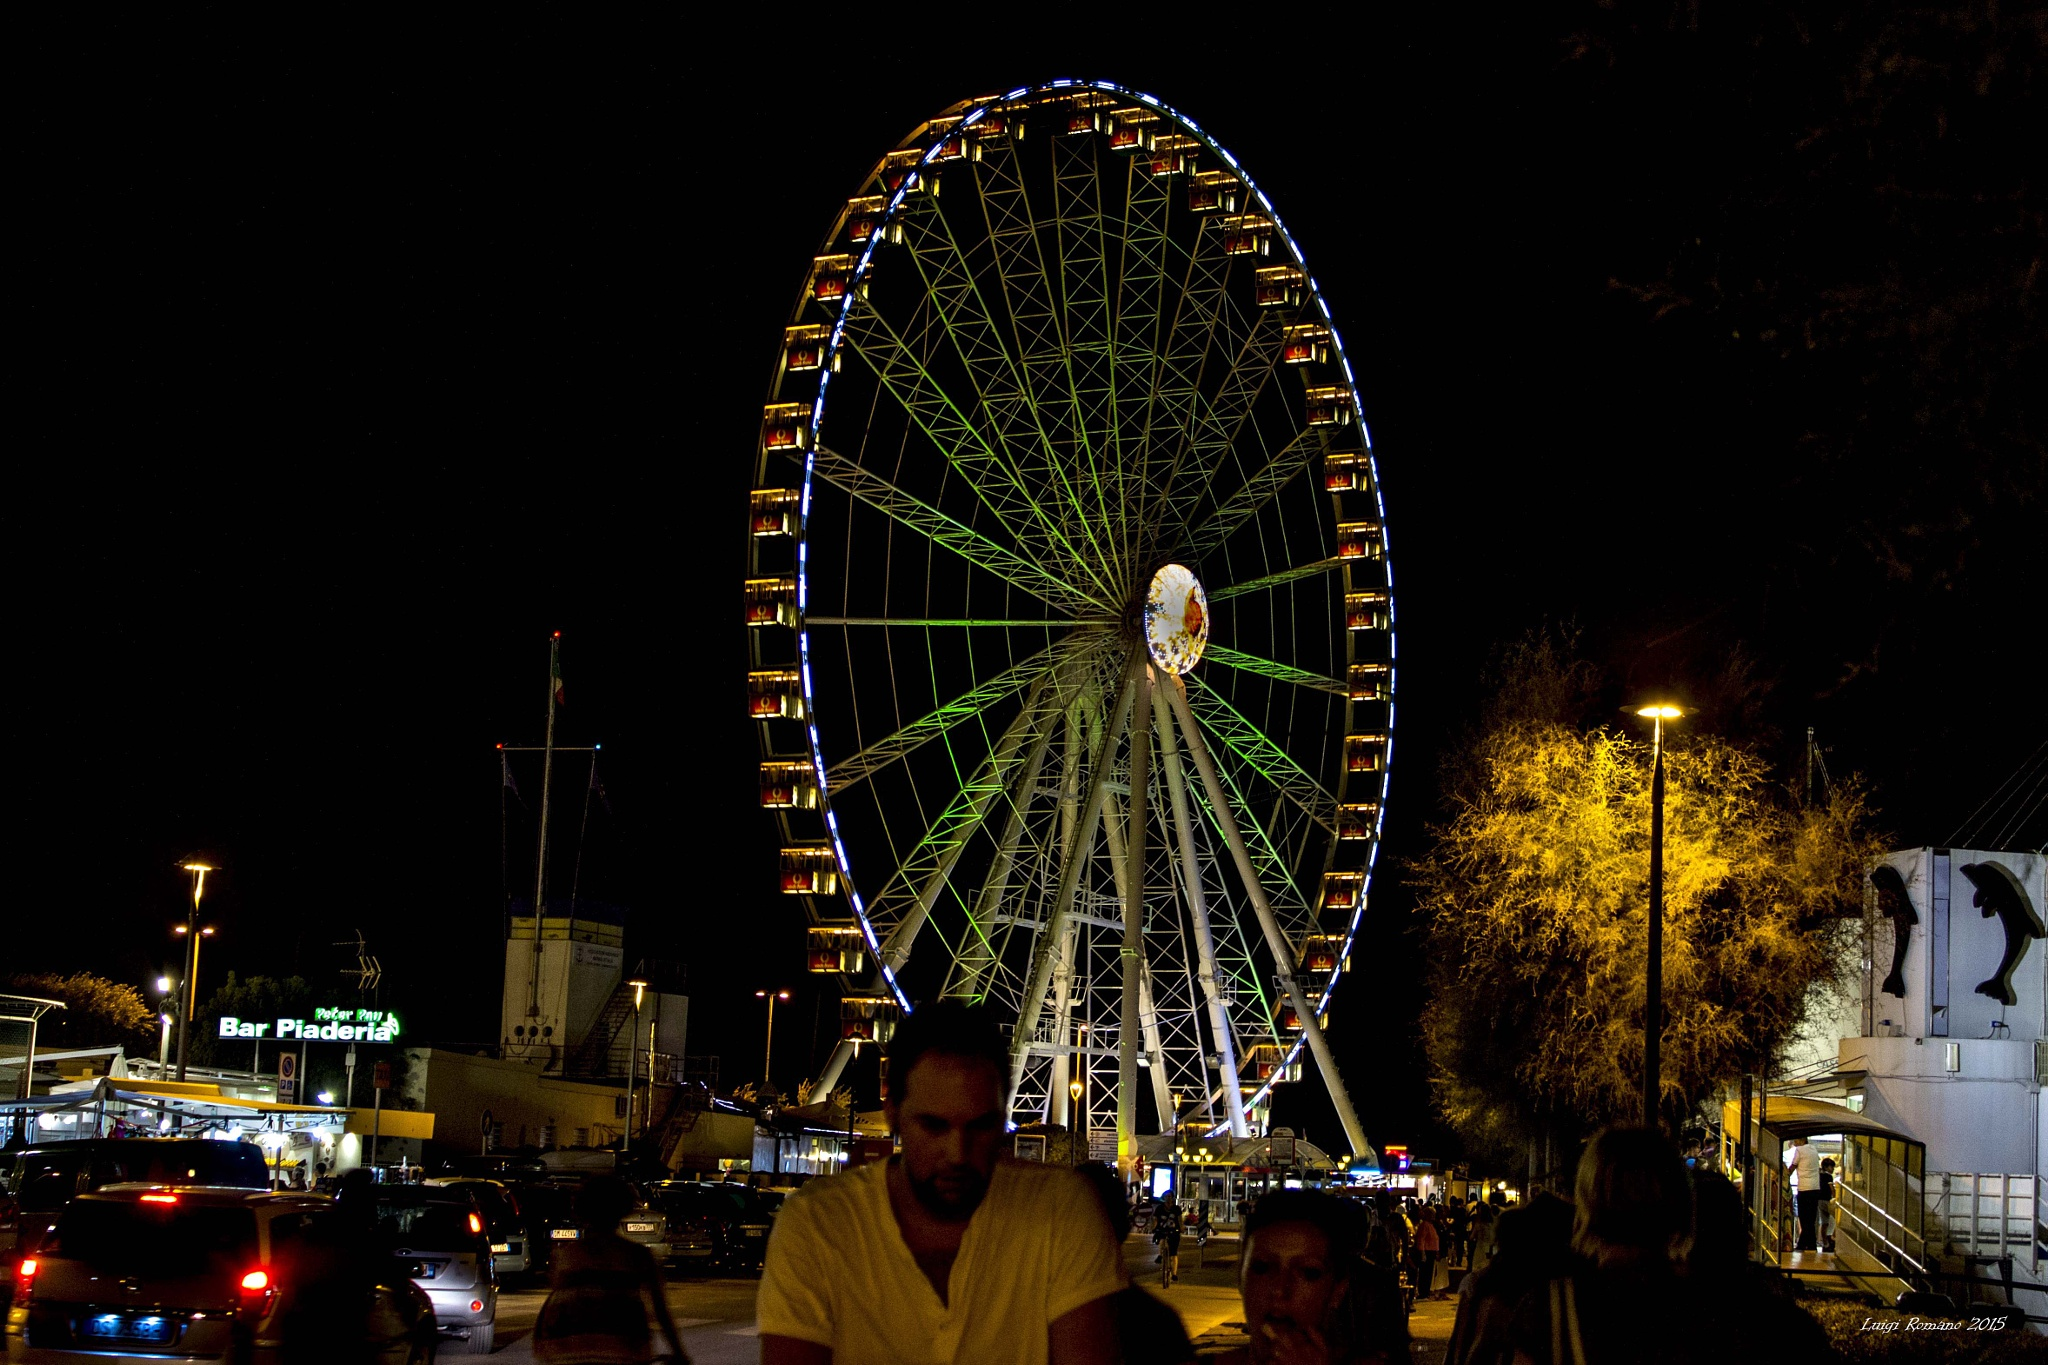 The Ferris wheel by Luigi Romano